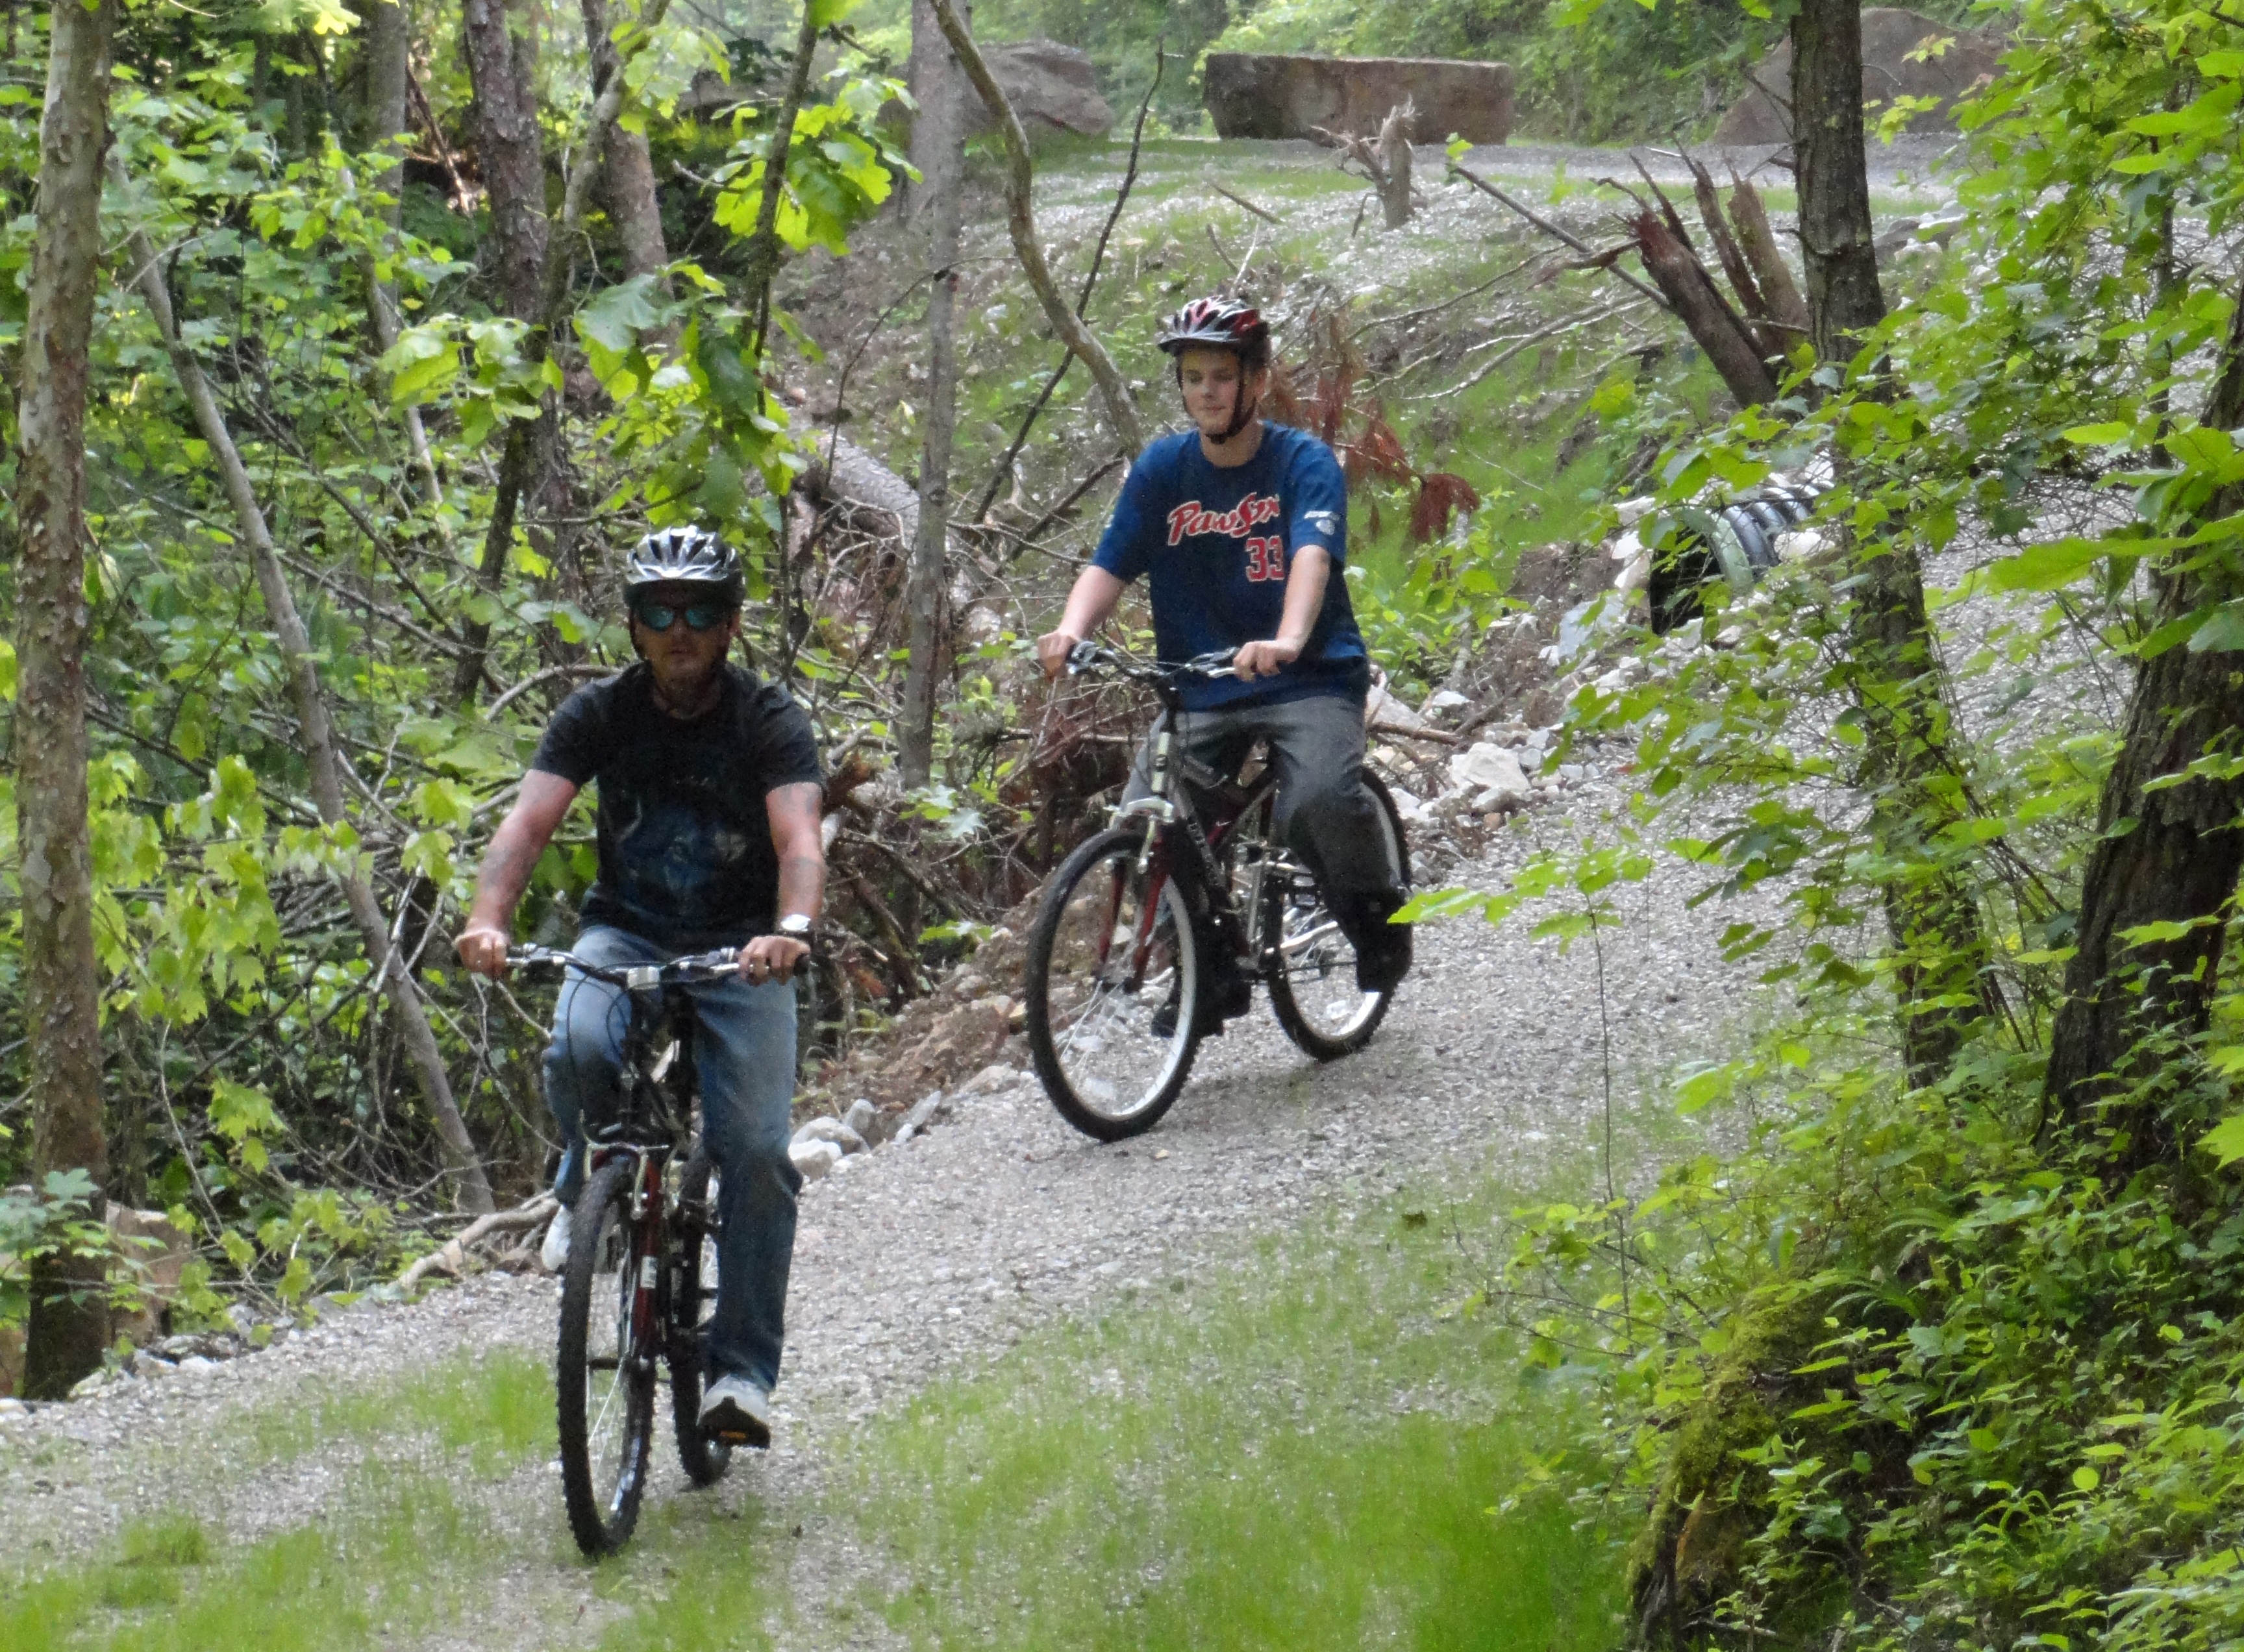 Biking Photo Cropped